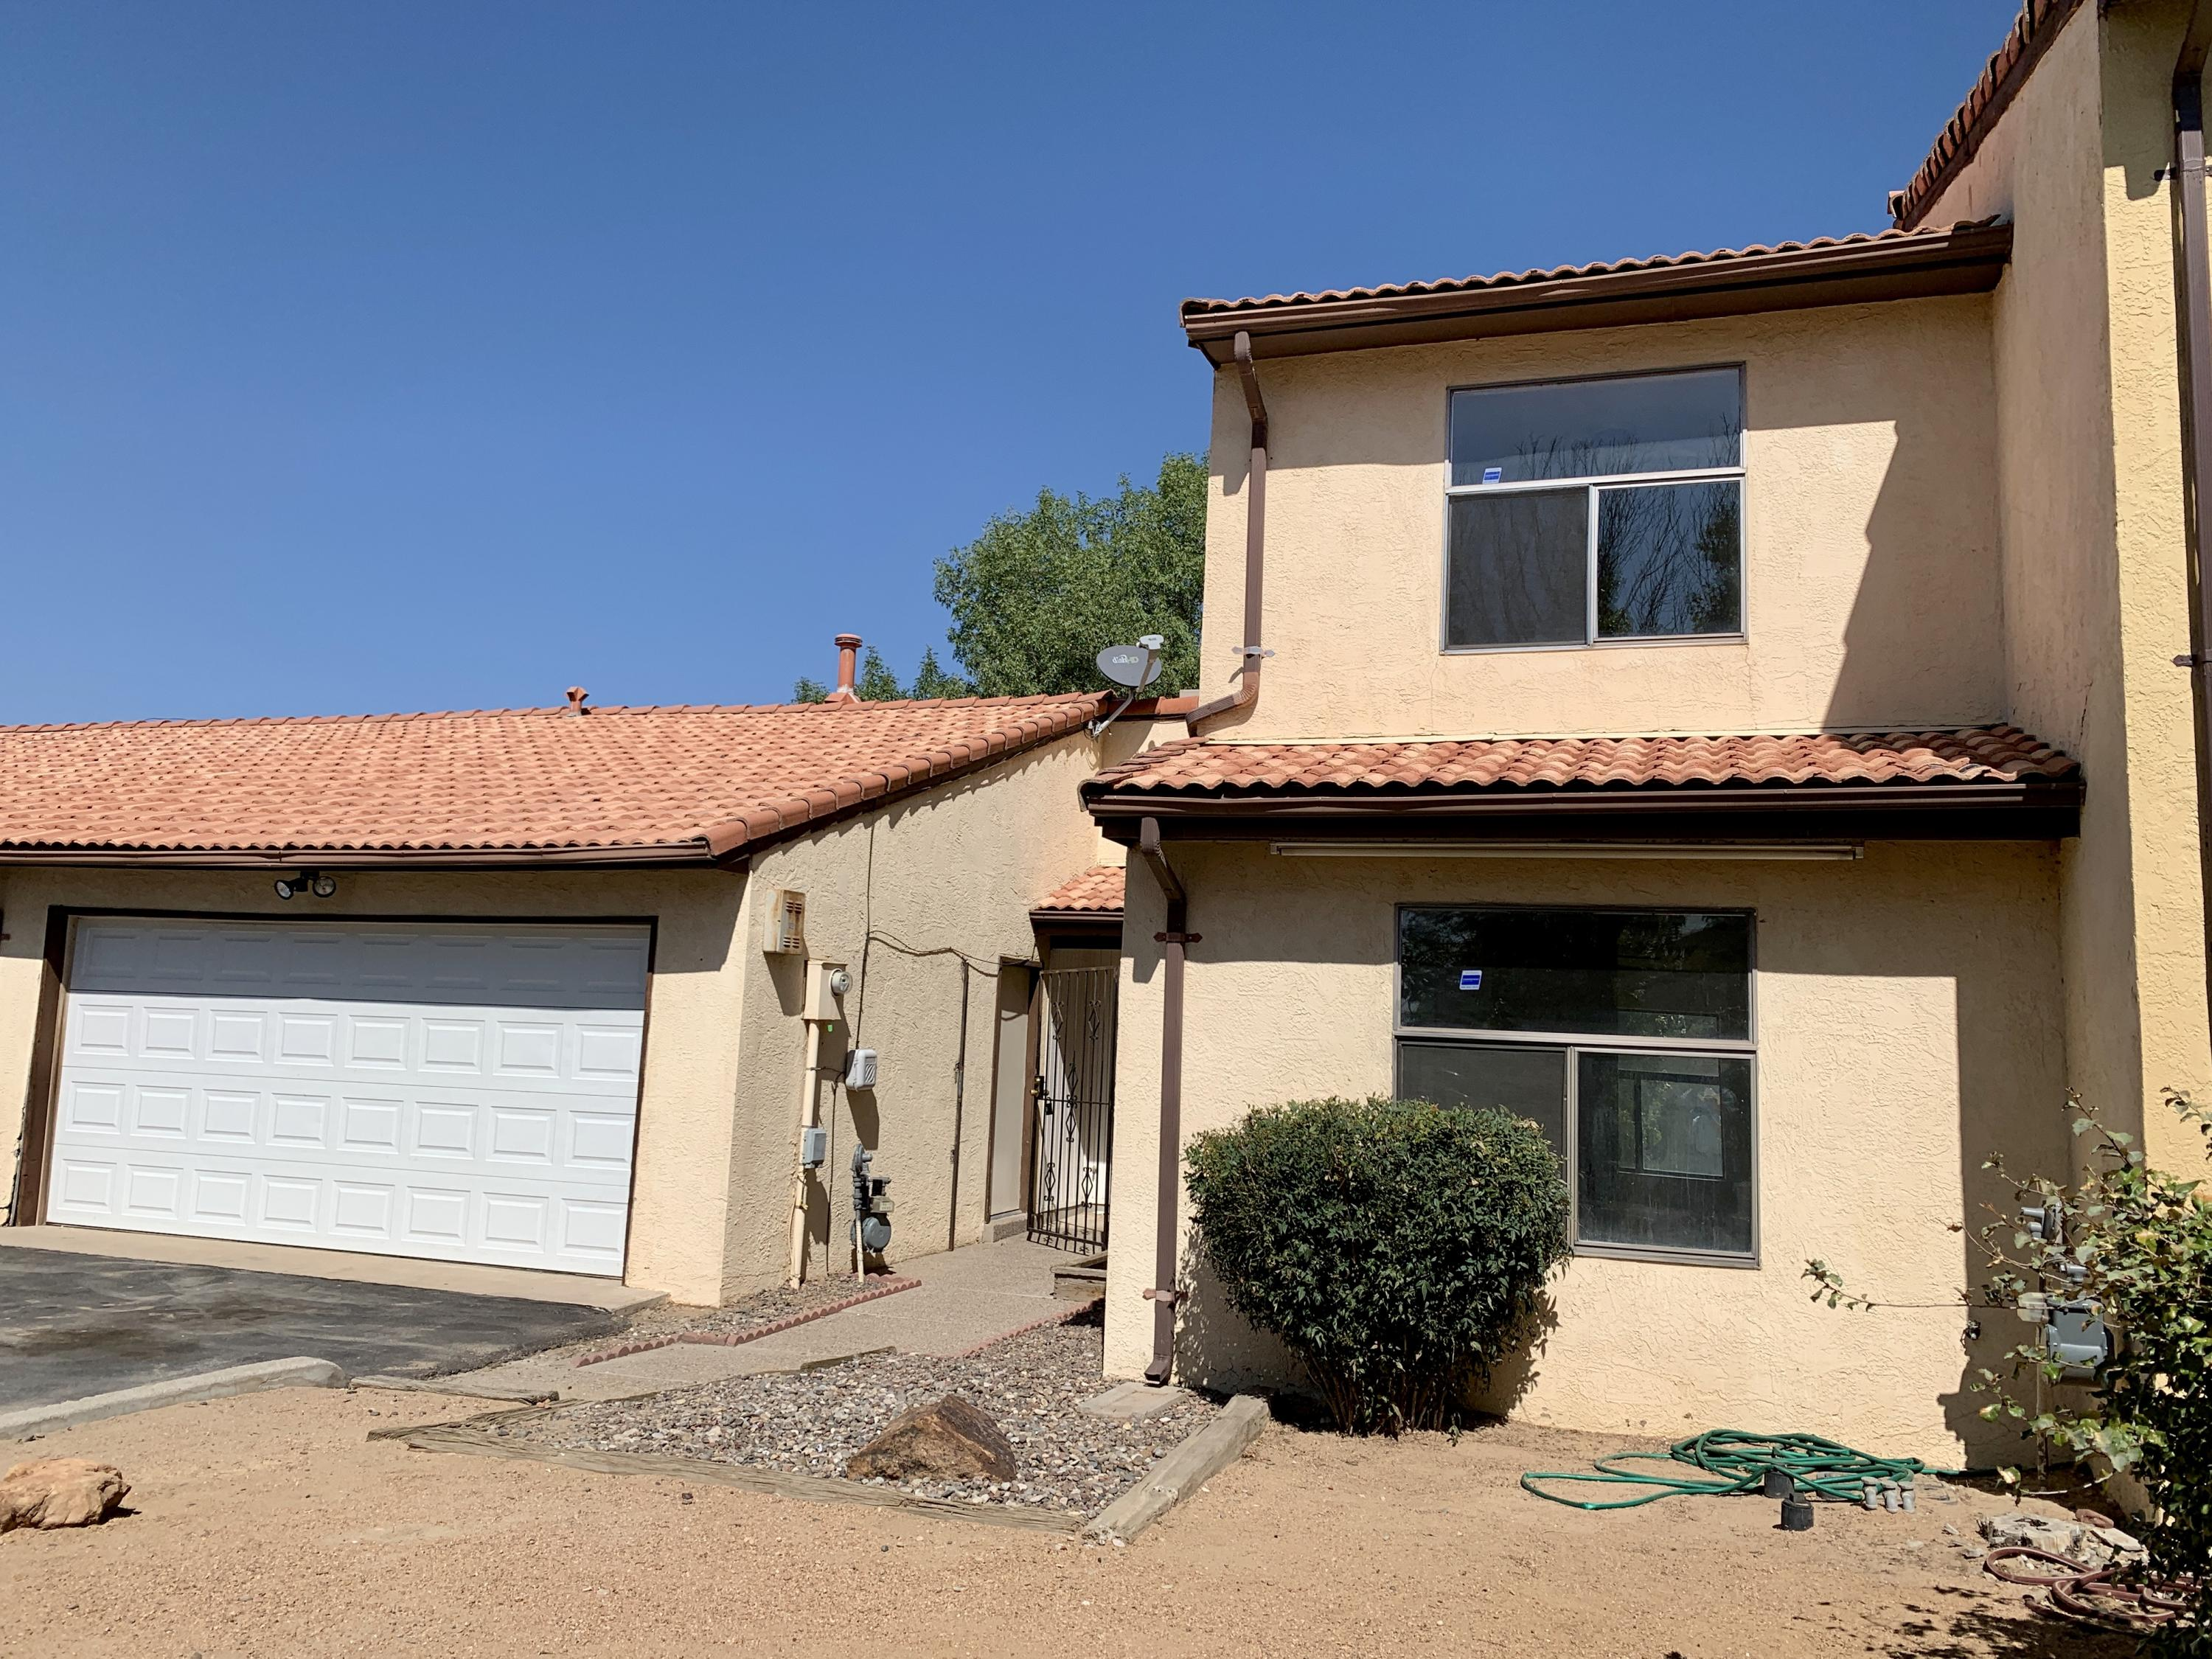 This property is priced to sell!  It does need some paint, carpet and some repairs.  Brokers, please review LO/SO remarks. This Town home is located next to Ladera Golf Course, has a Spanish tile roof, washer & dryer hookups, a gated front entrance, back patio and is fully fenced.